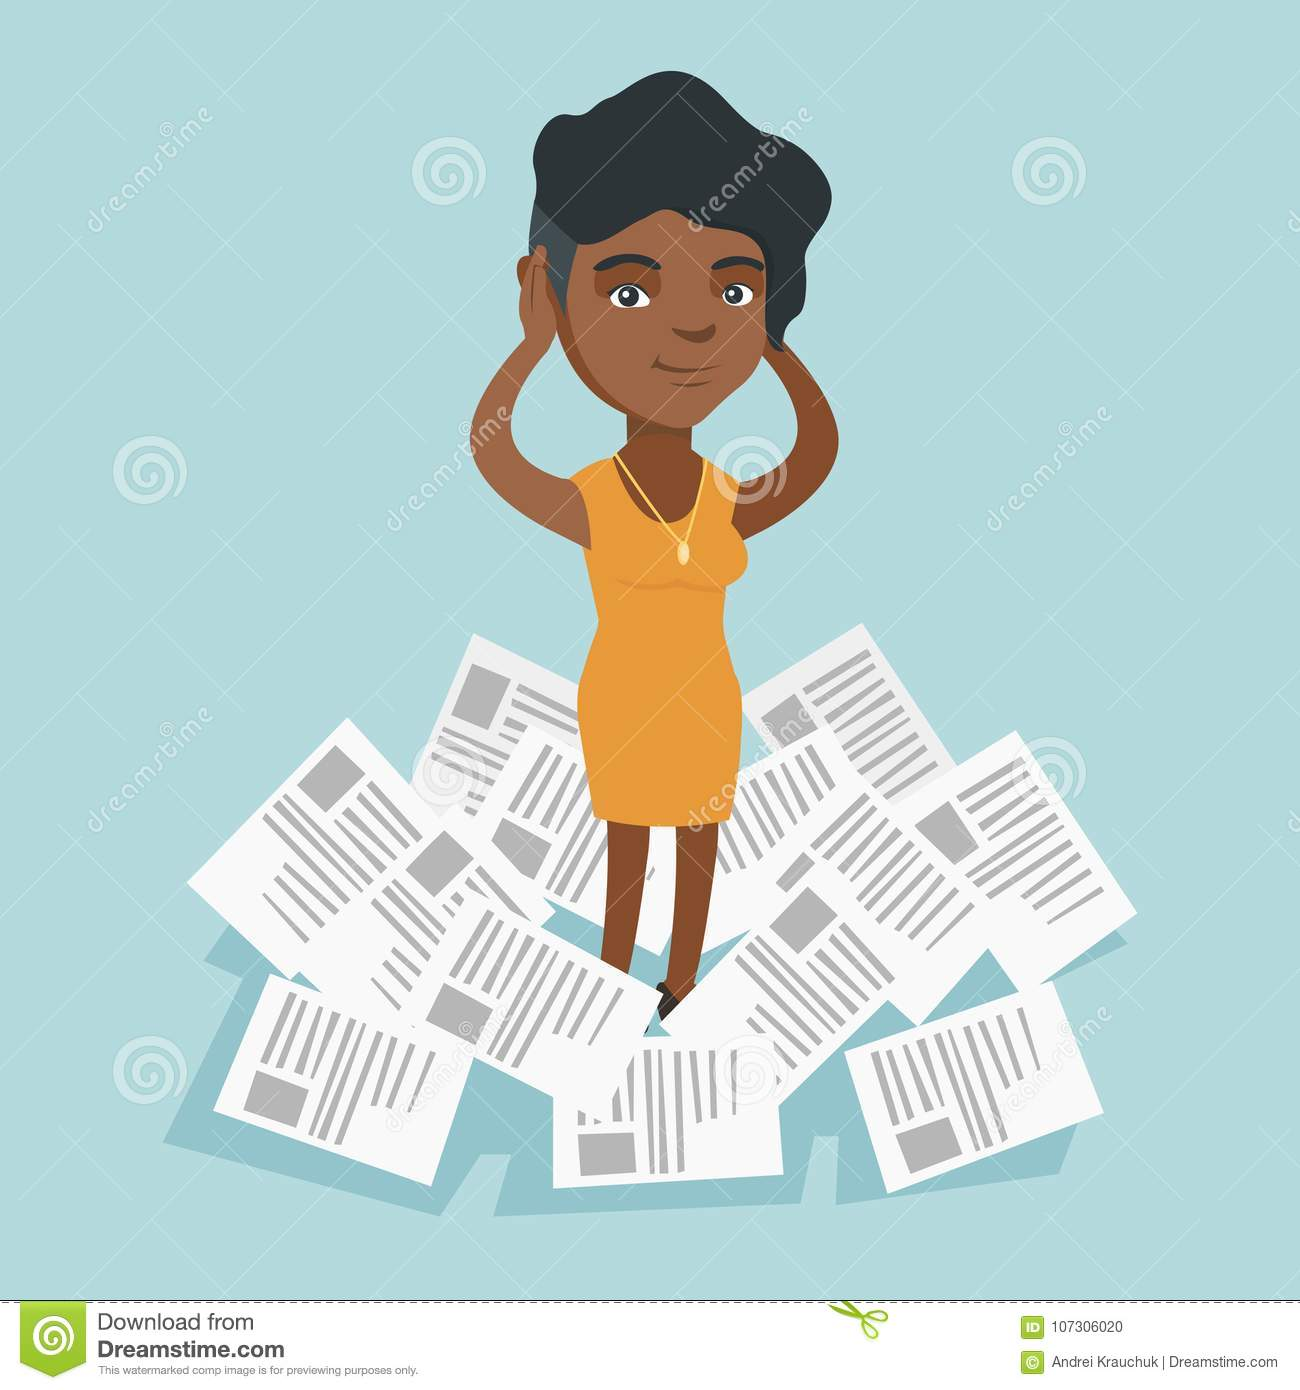 Stressed woman standing in the heap of papers.